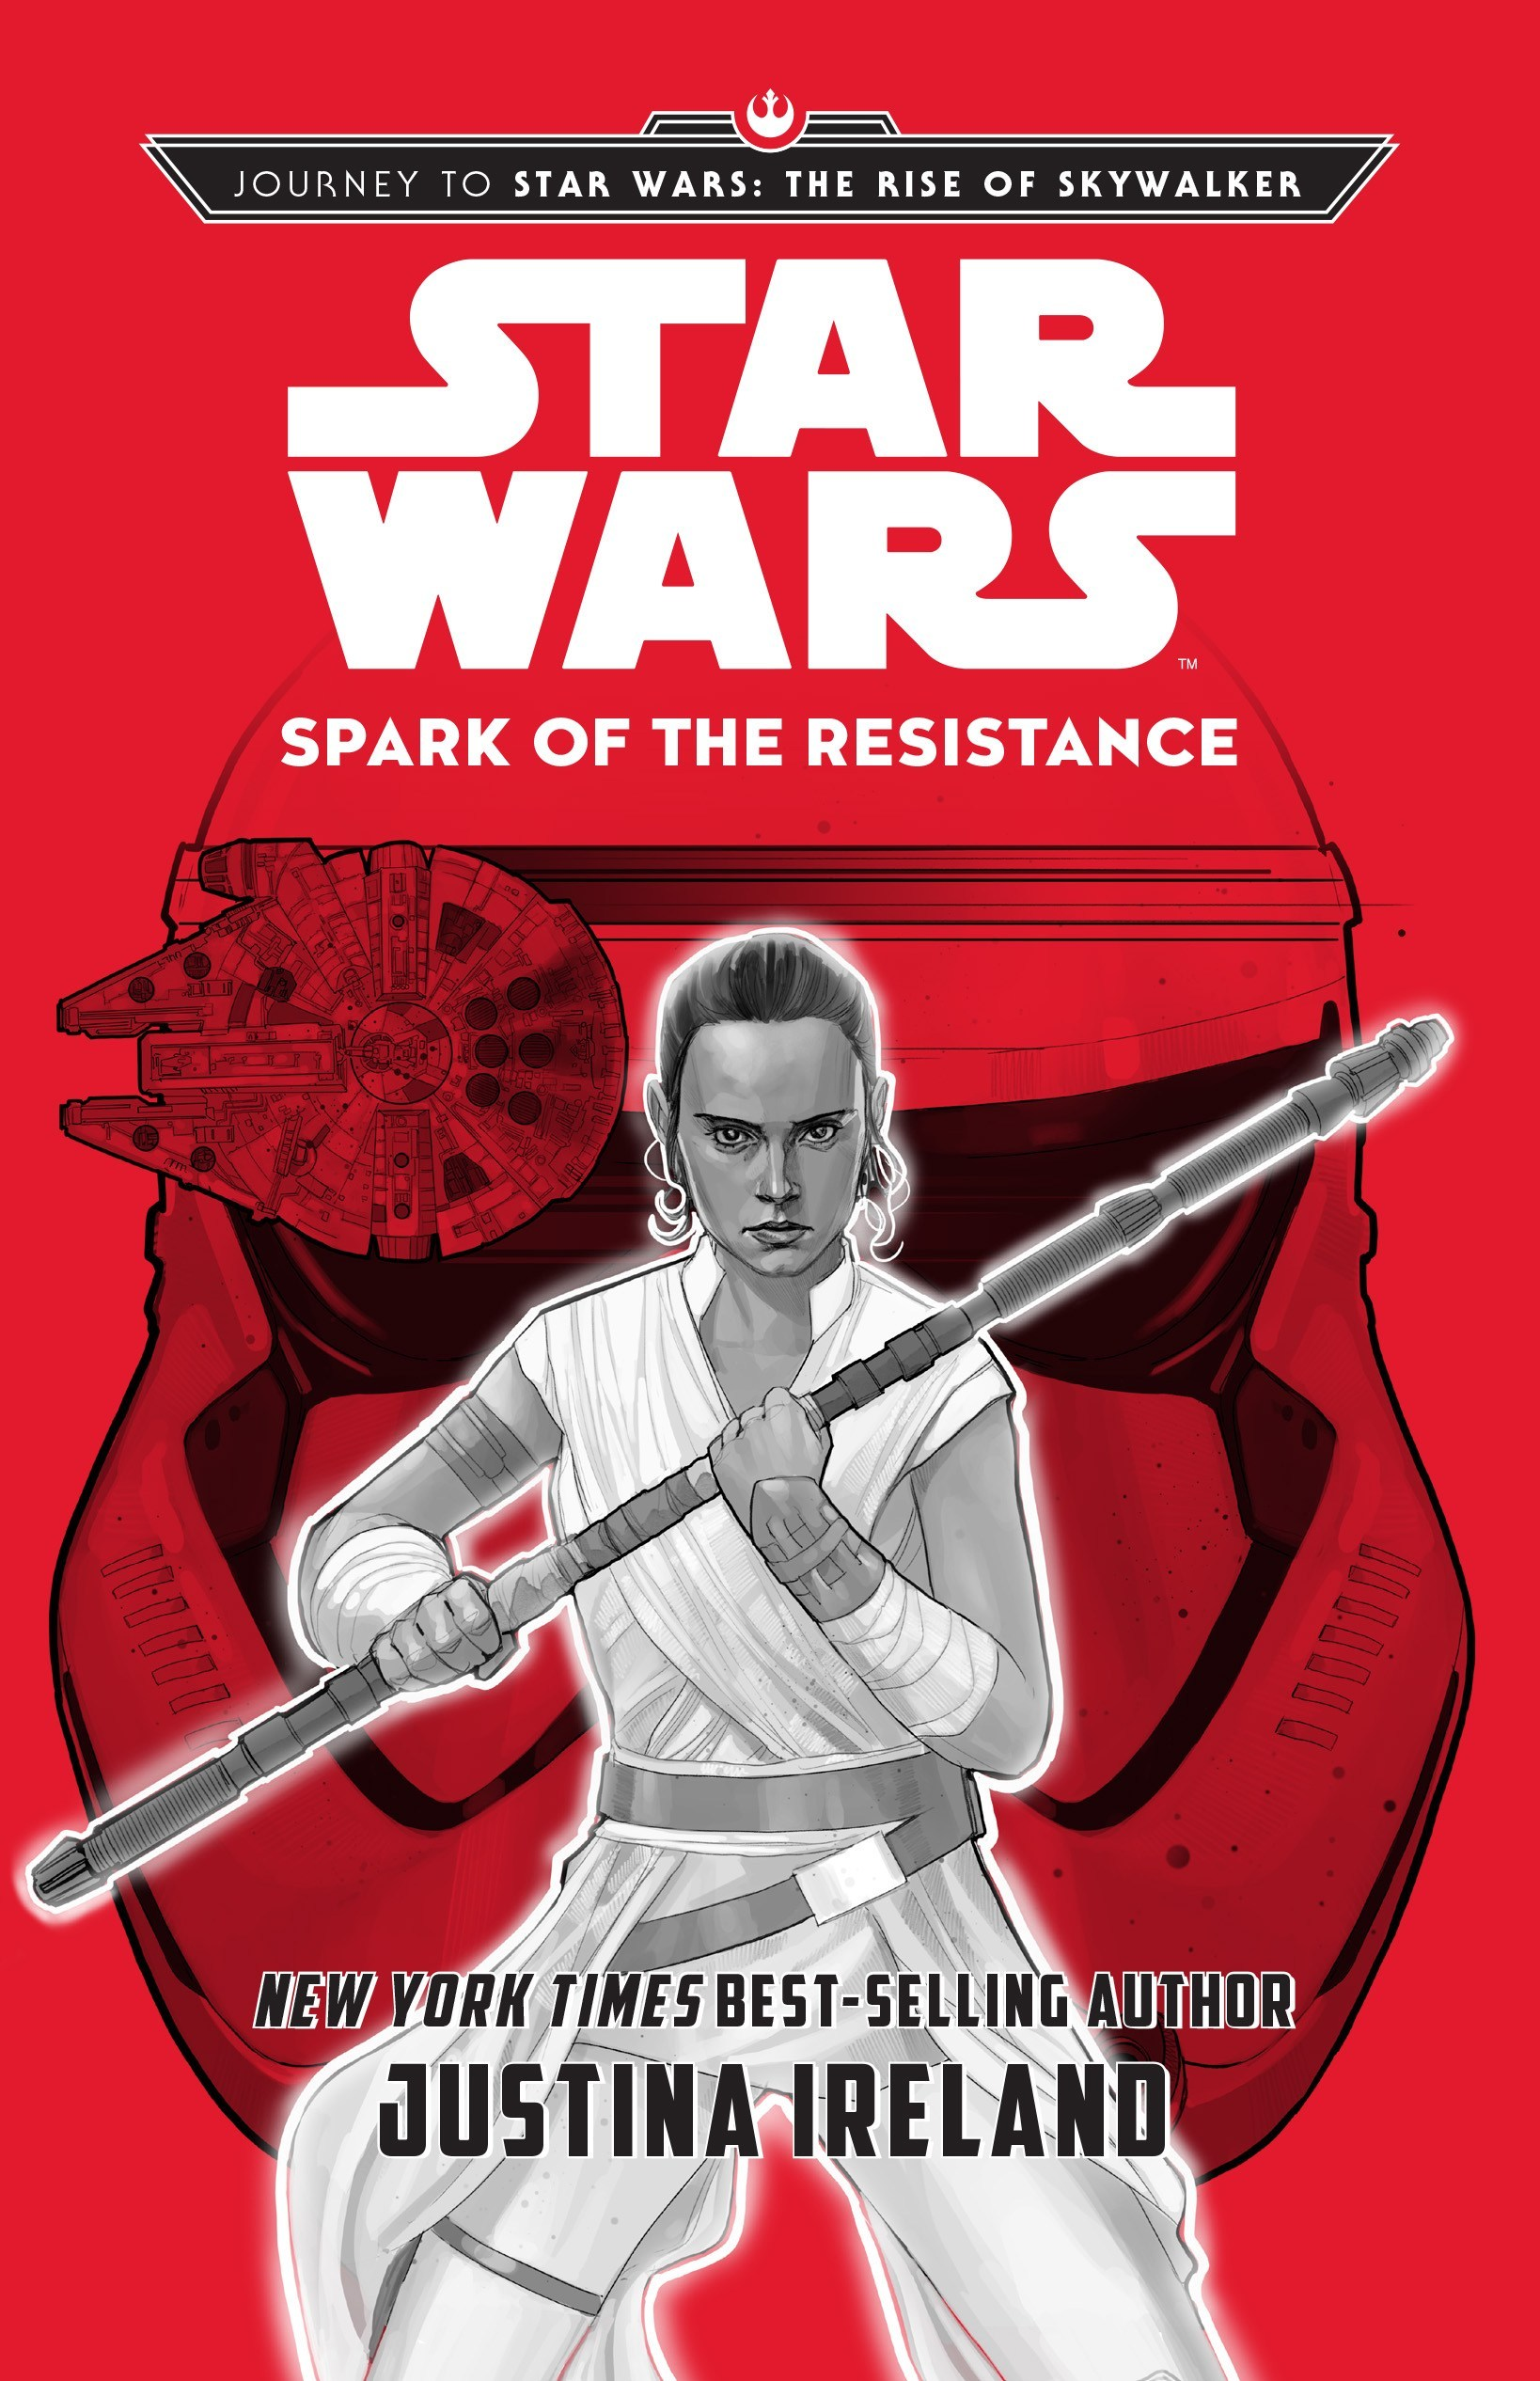 Spark of the Resistance